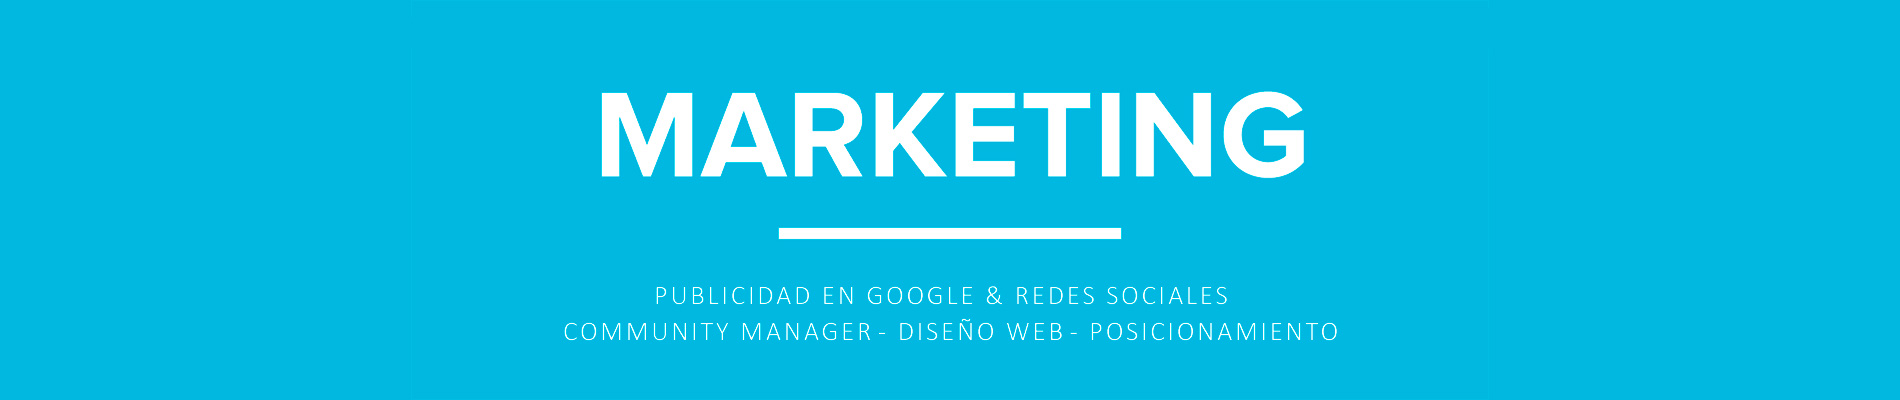 marketing digital online en sevilla